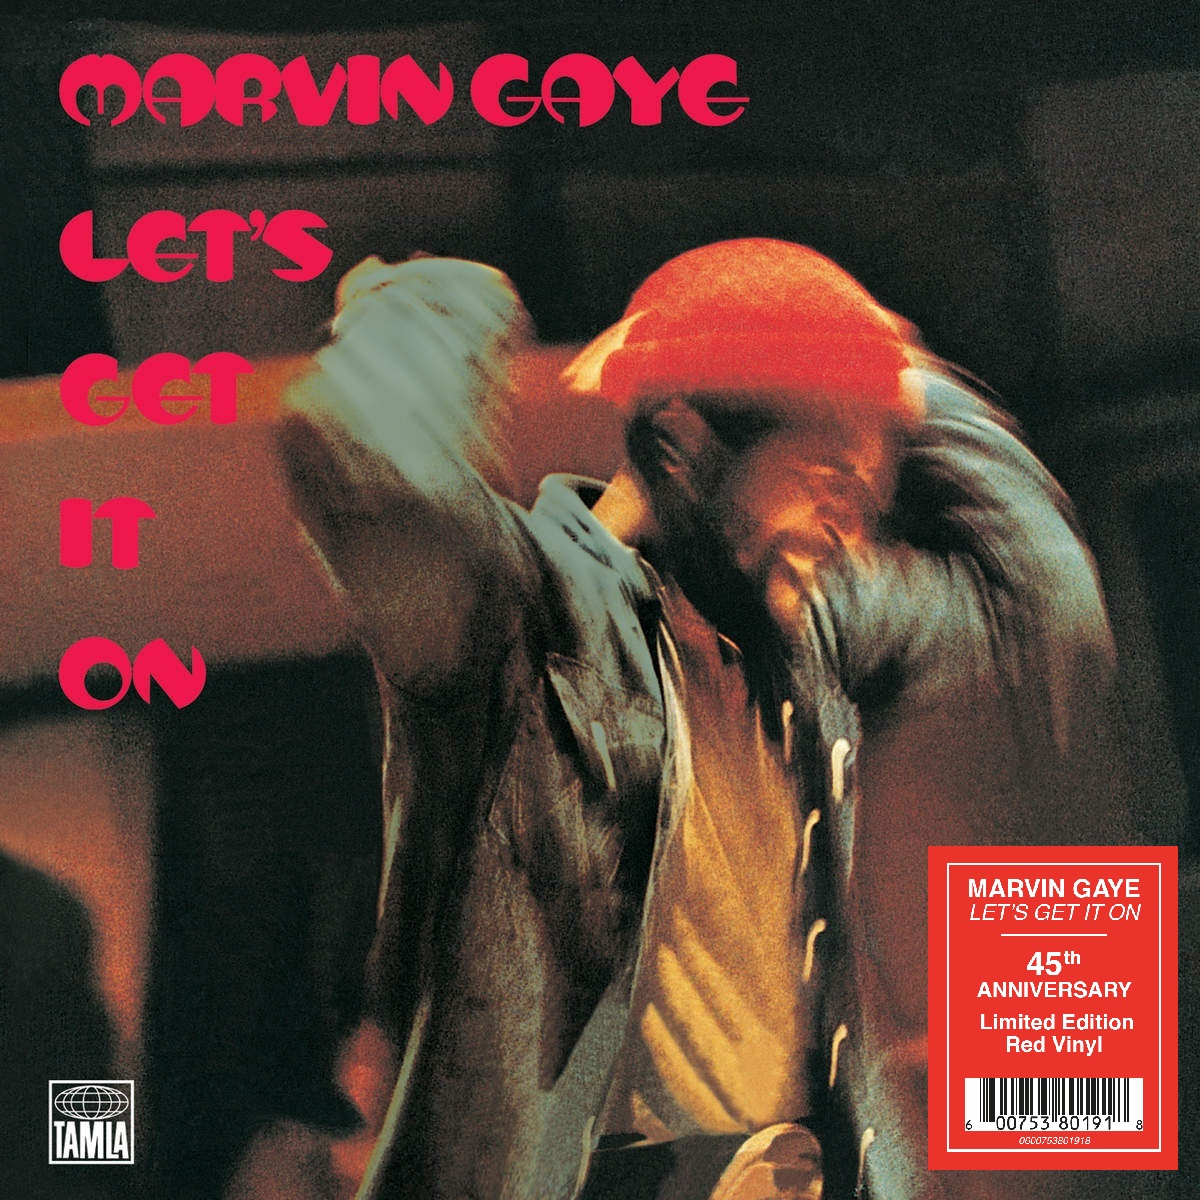 Marvin Gaye - Let's Get It On (45th Anniversary)